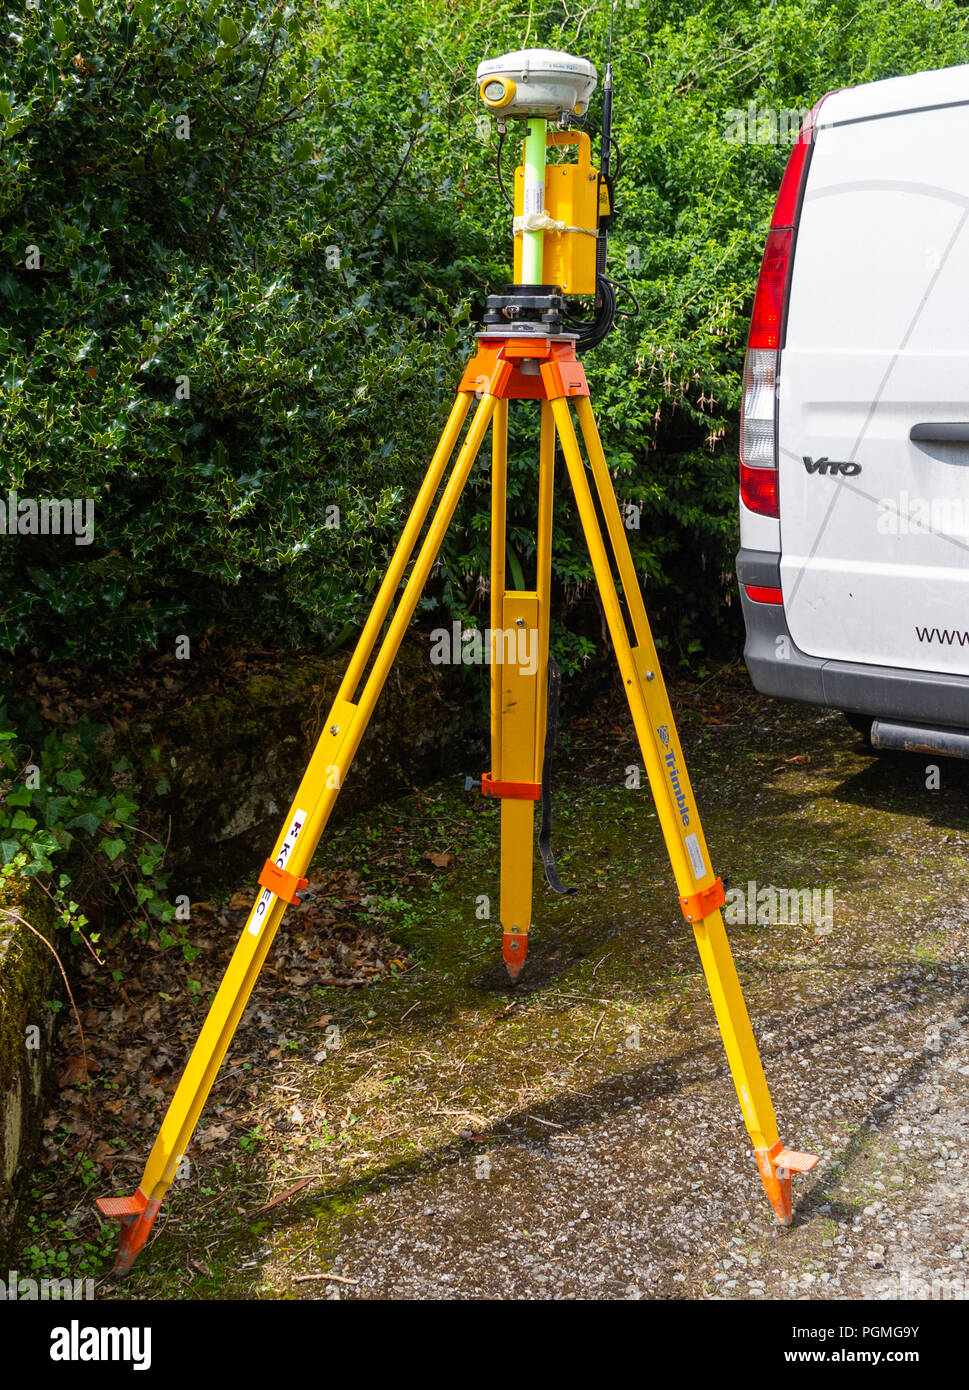 trimble global positioning receiver system mounted on its tripod. - Stock Image